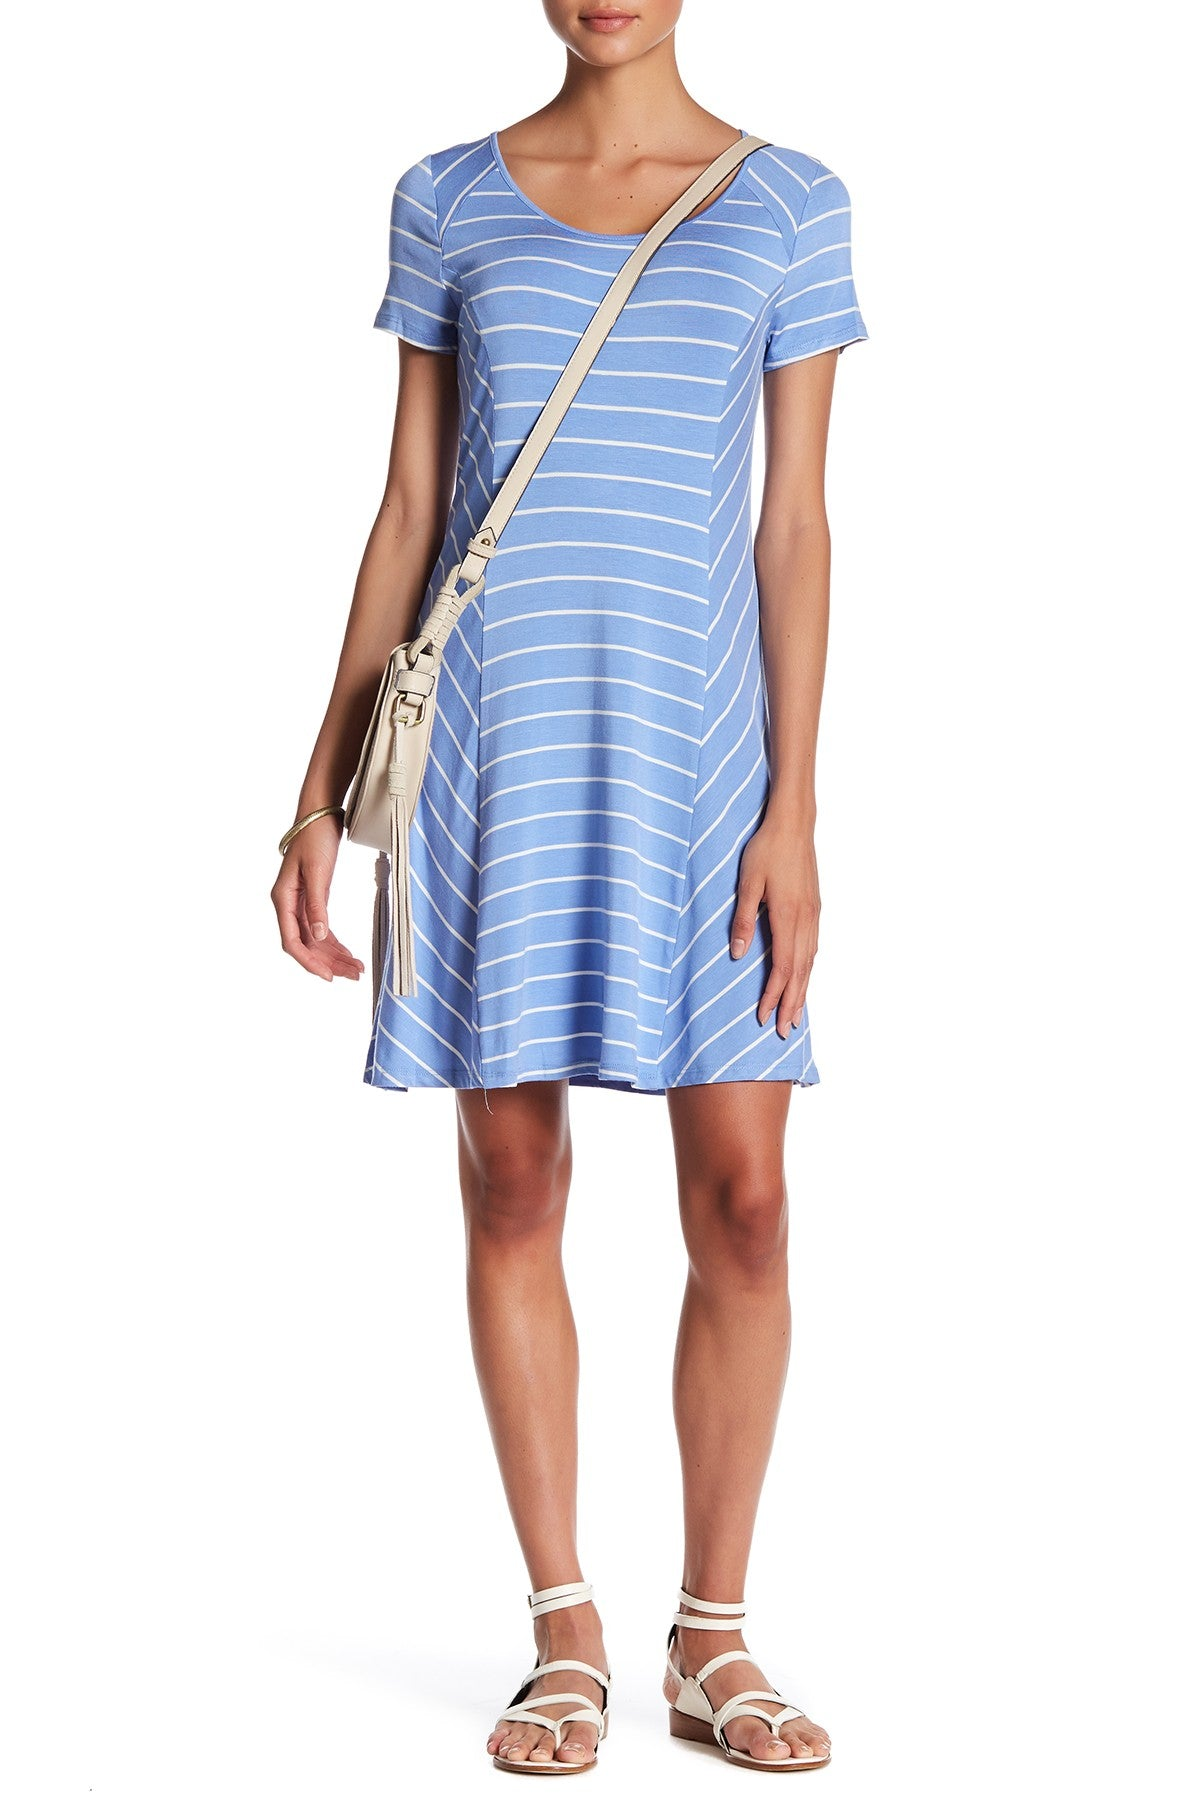 Kensie Women's Paneled Striped T-Shirt Dress Perriwinkle Combo L